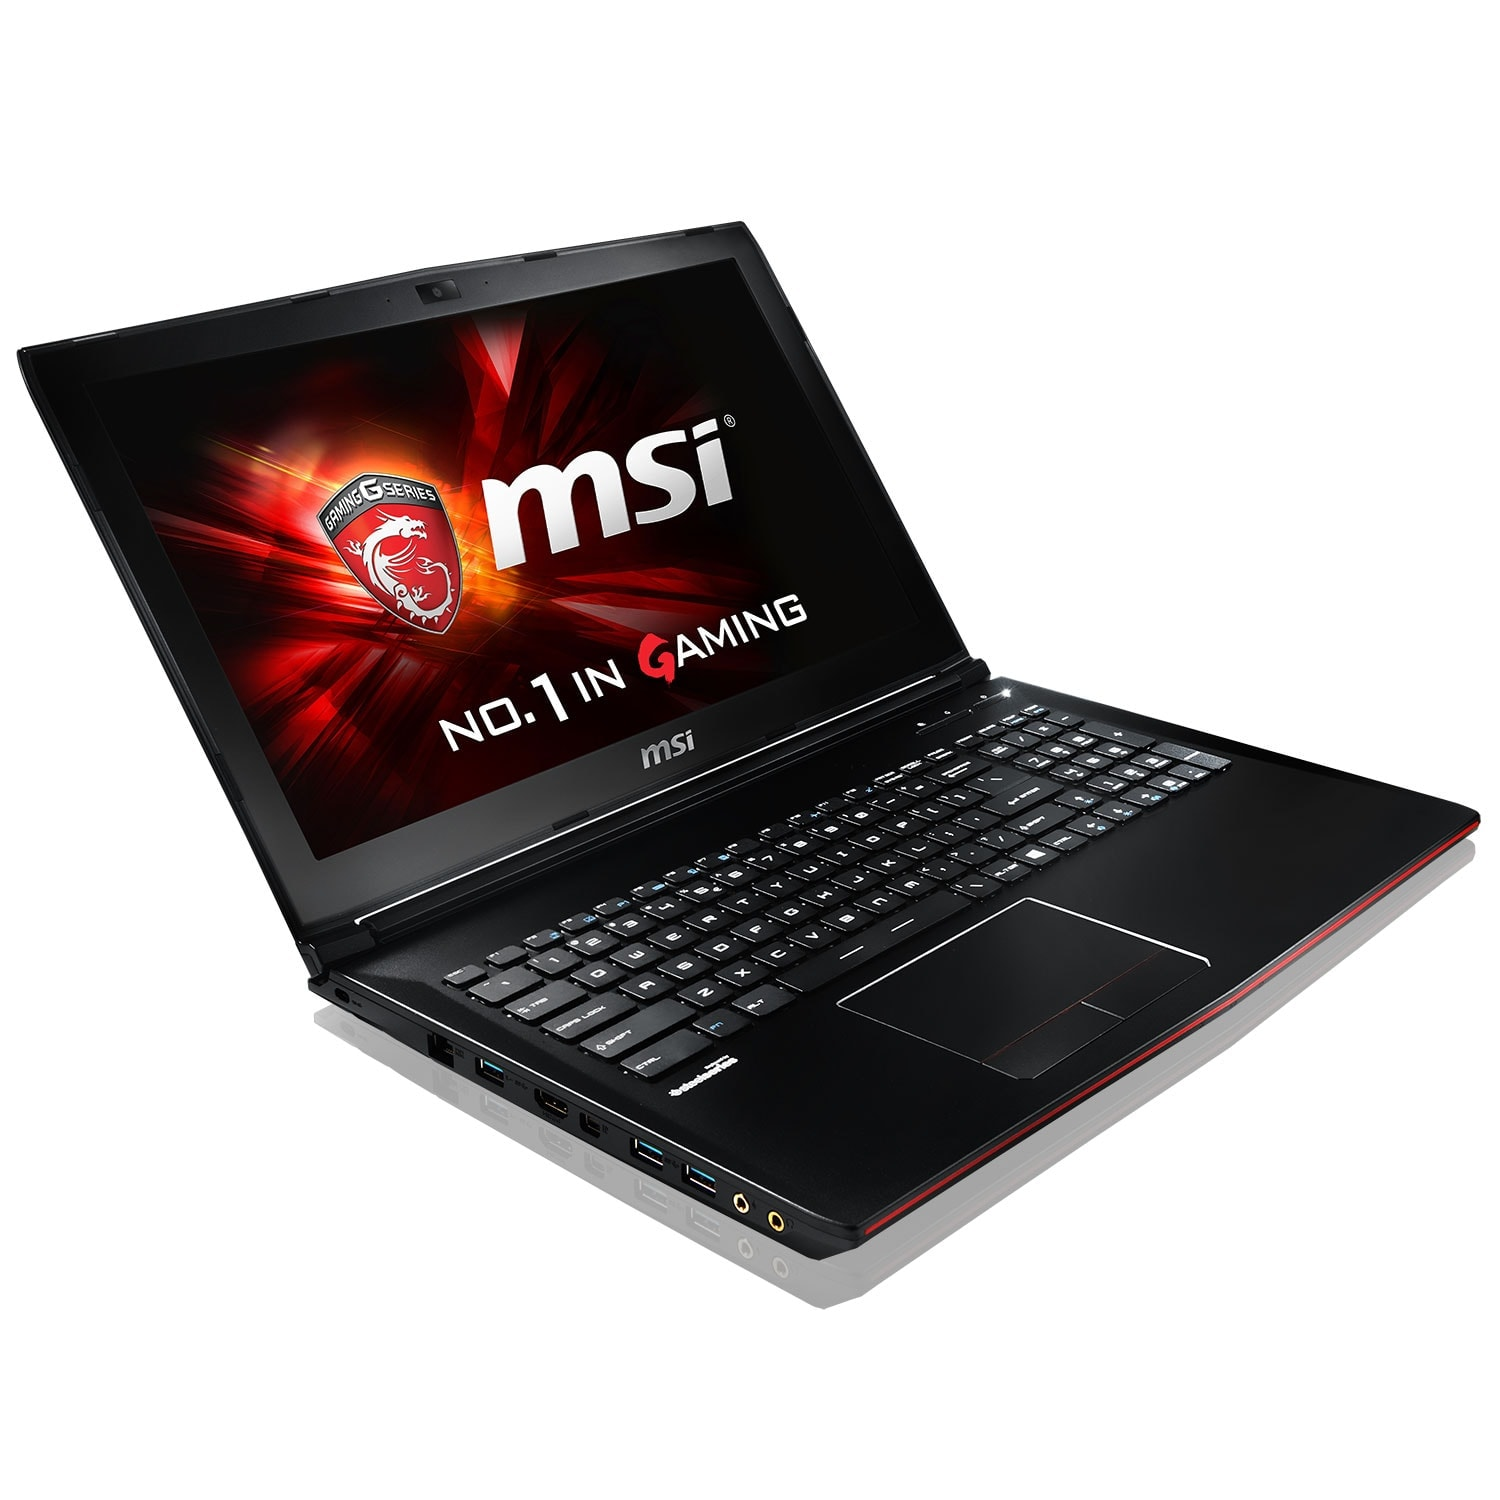 MSI 9S7-16J522-608 - PC portable MSI - Cybertek.fr - 0